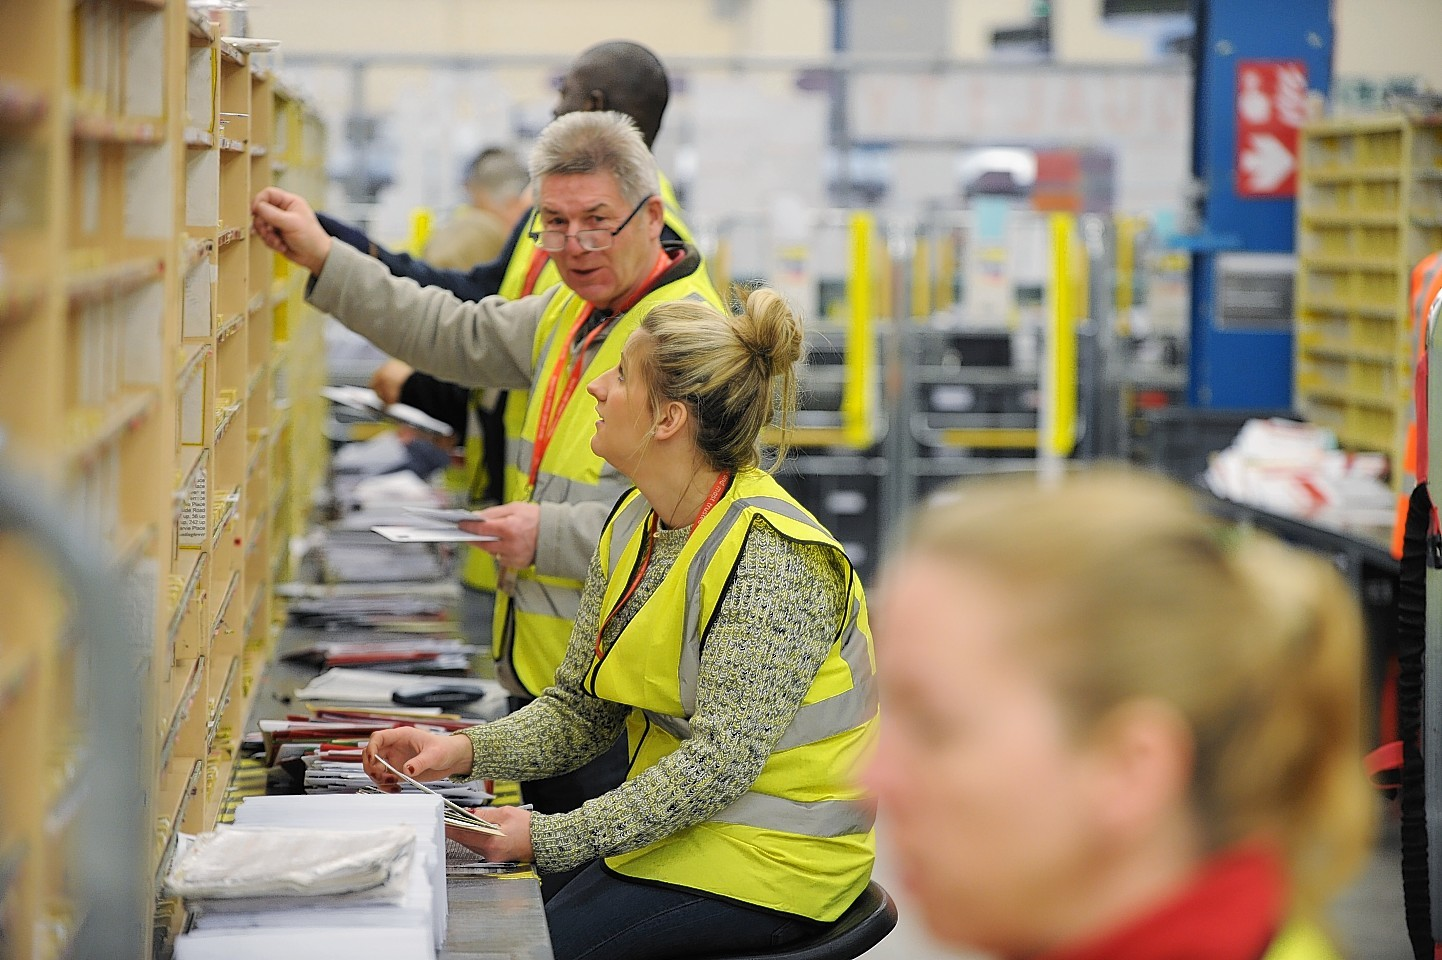 Royal Mail in Aberdeen sorting cards and parcels on the busiest day of the year for the organisation